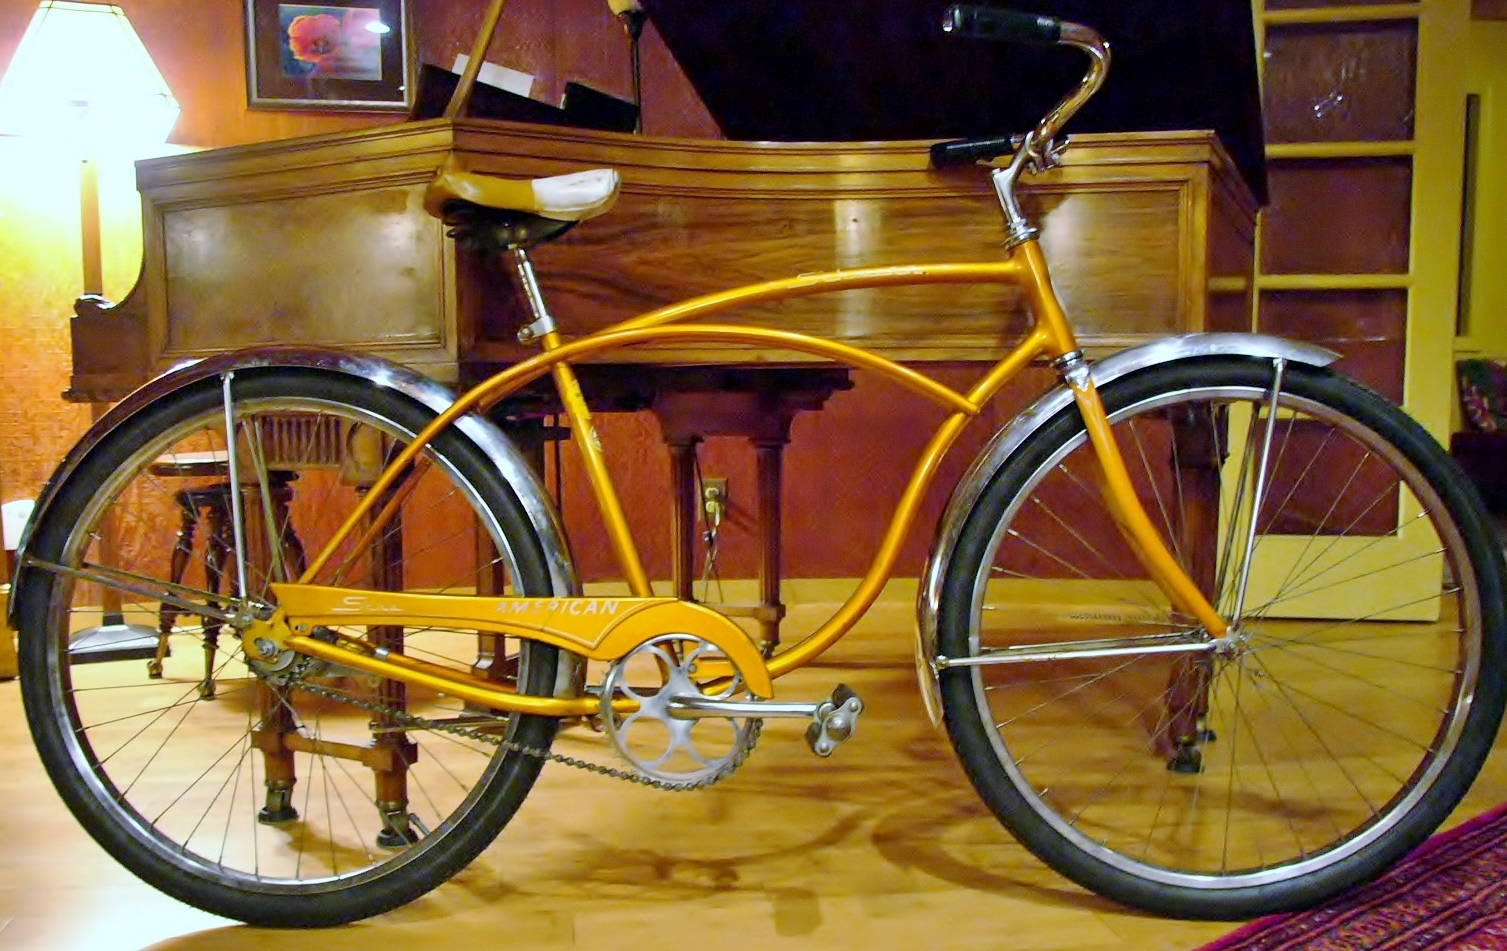 My Dad's 1965 Schwinn American | Restoring Vintage Bicycles